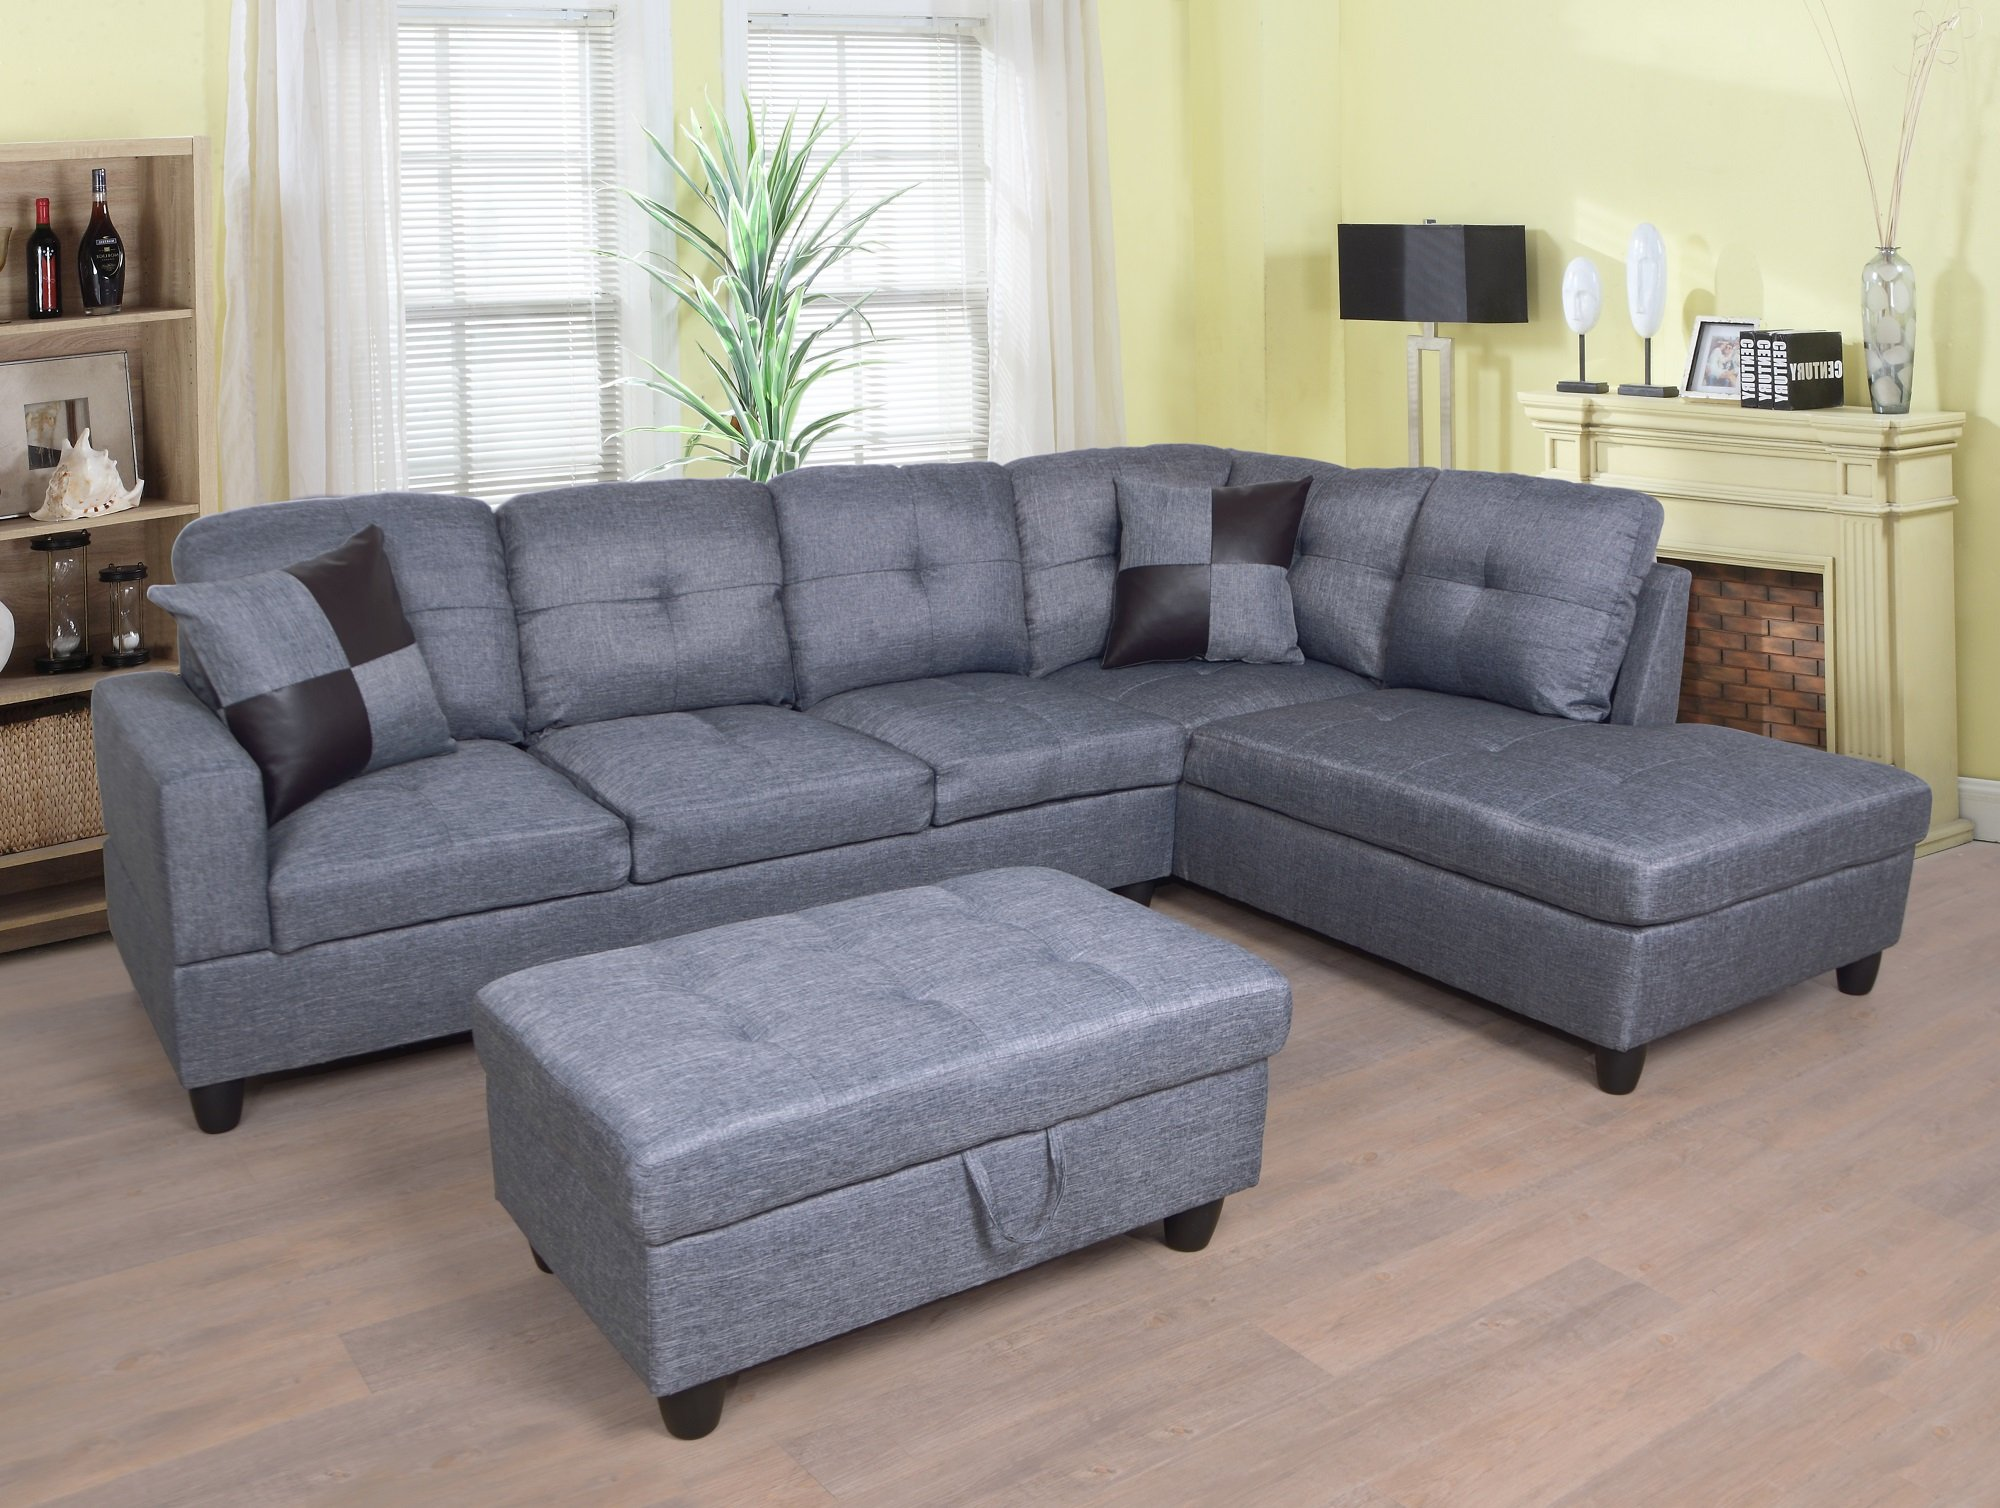 Beverly Fine Furniture Right Facing Linen Russes Sectional Sofa Set With Ottoman, GREY by Beverly Fine Furniture